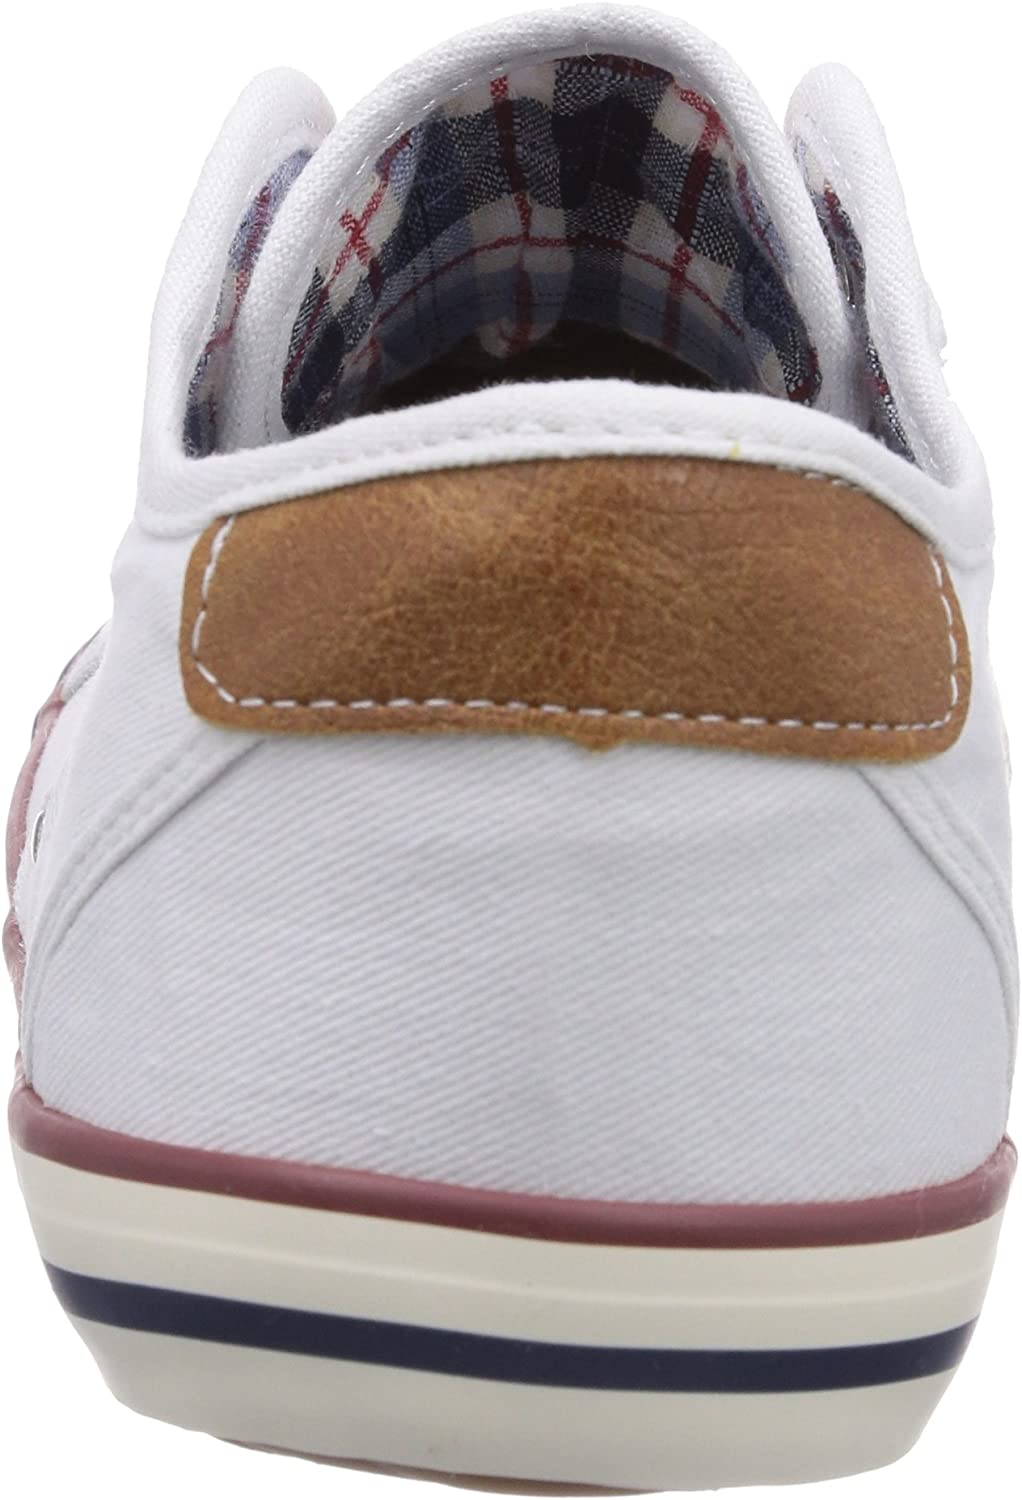 Mustang 1099-401-1 Chaussons Doubl/é Chaud Femme